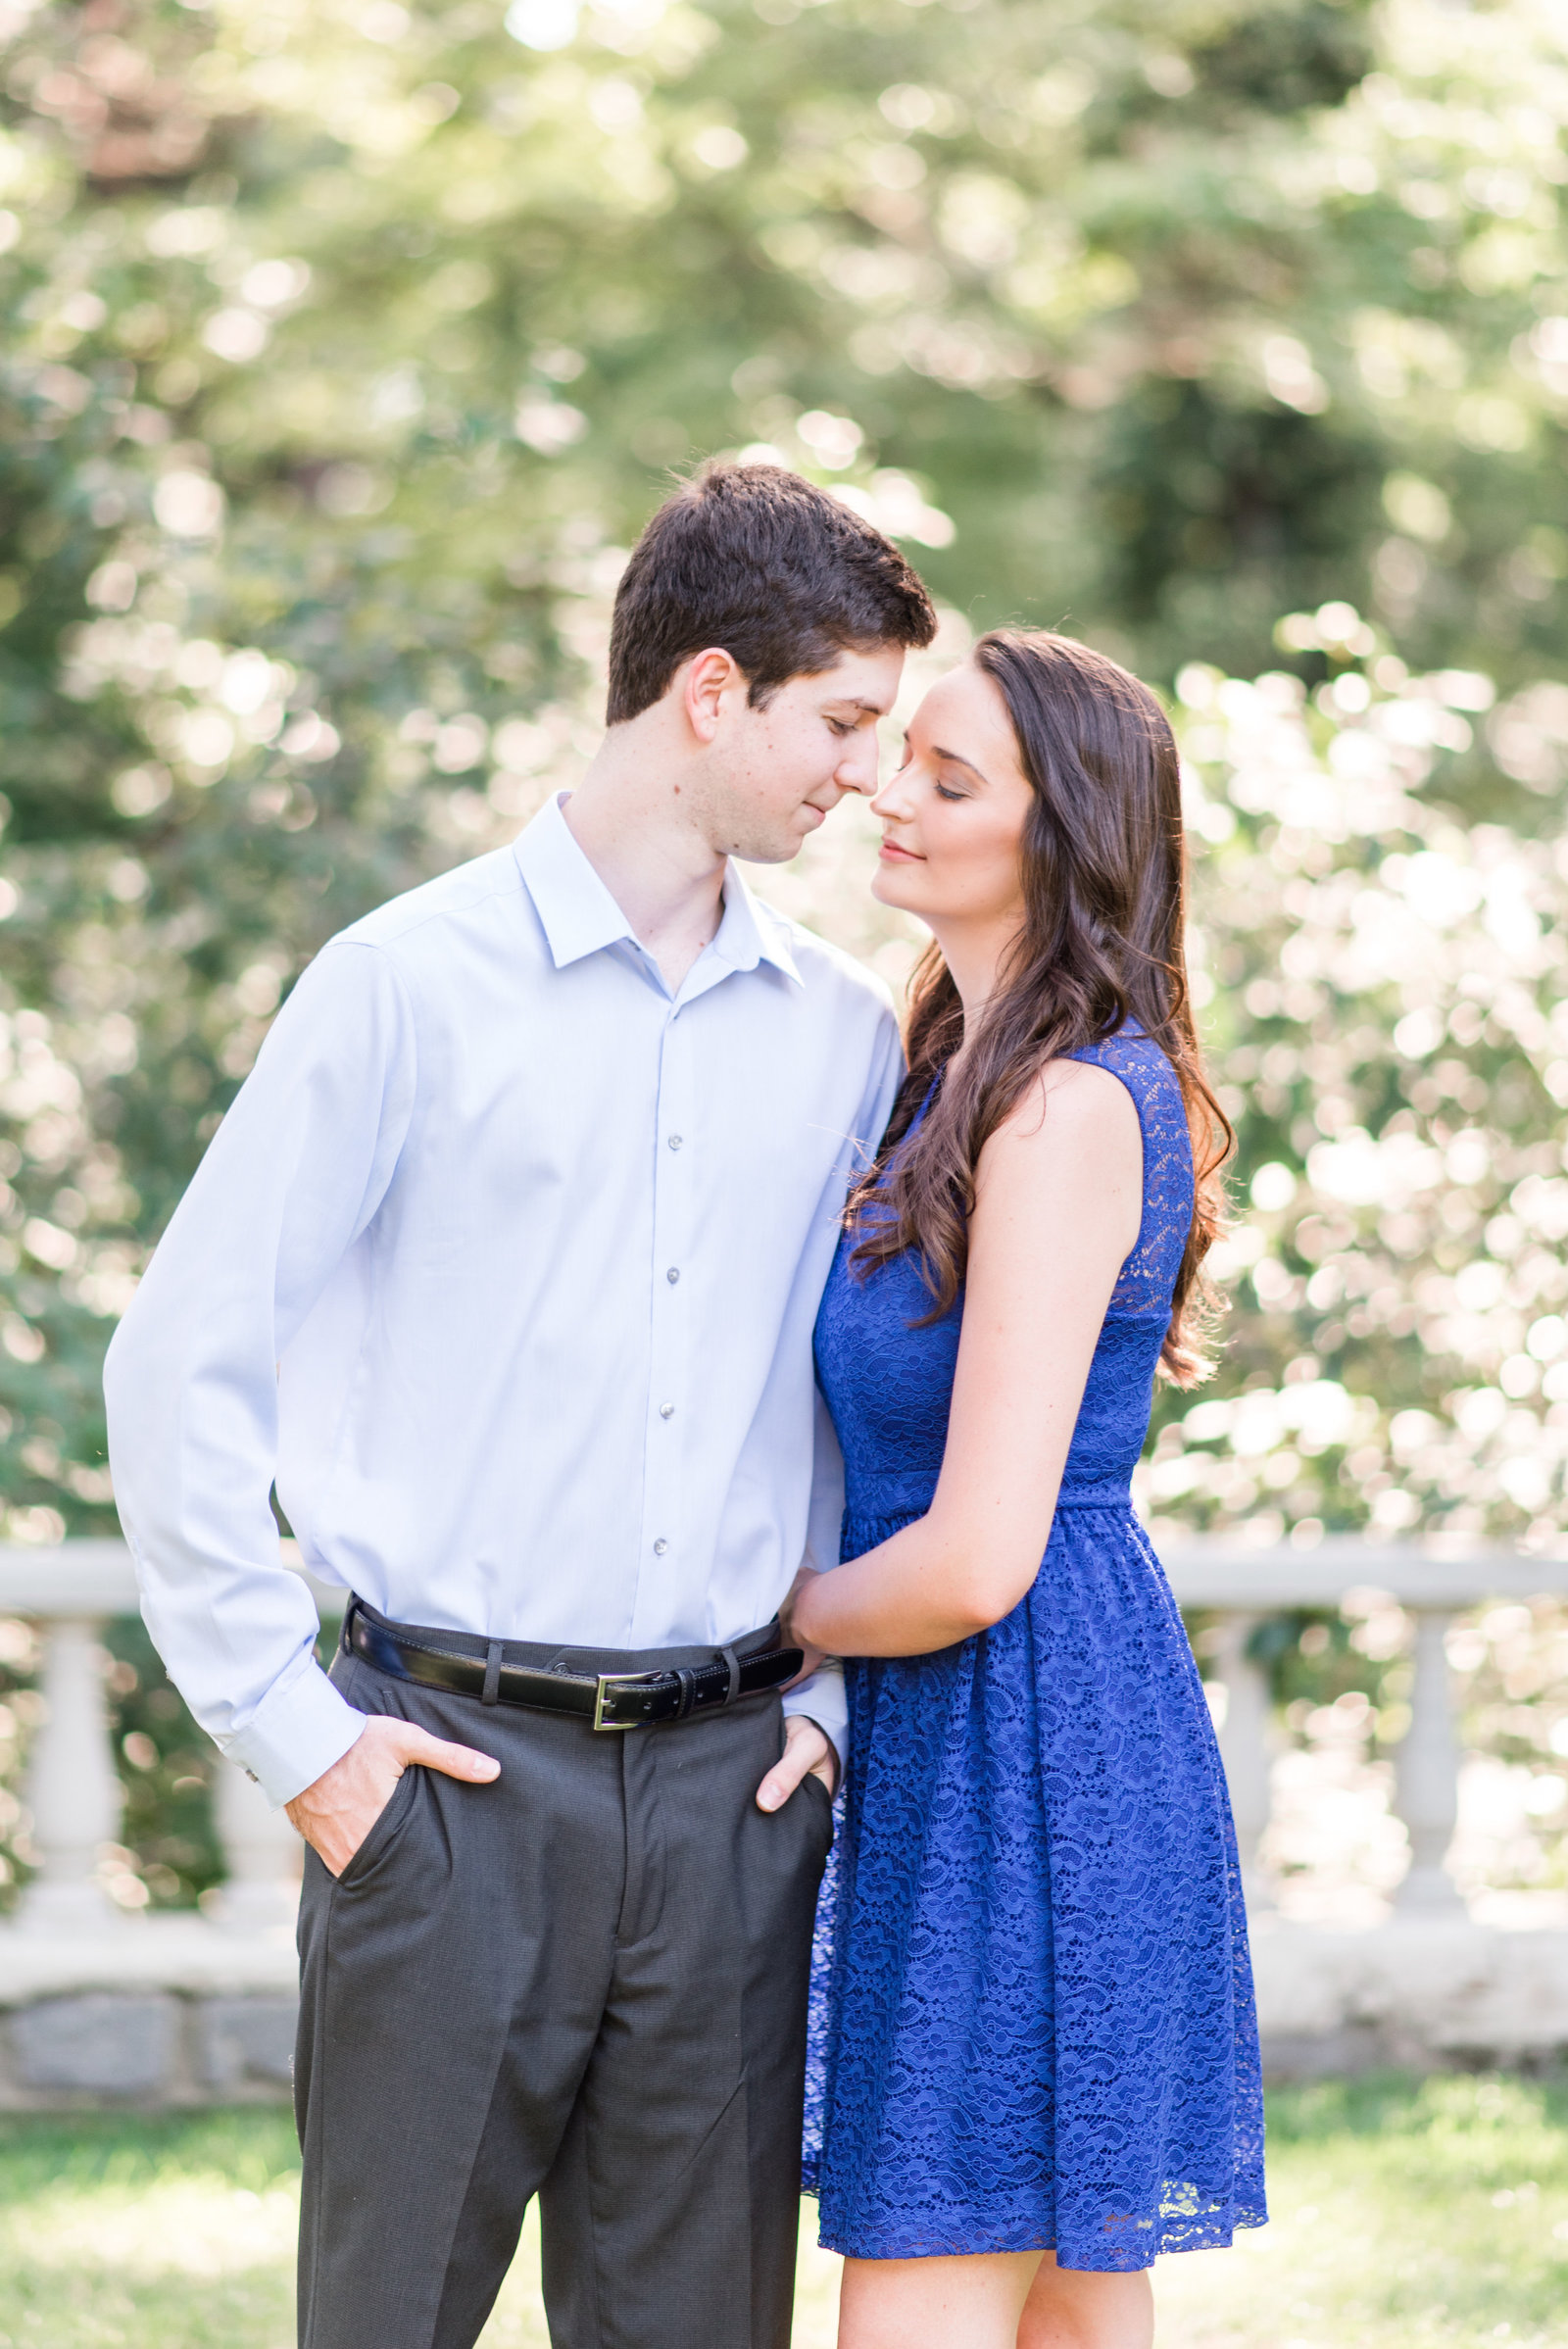 norfolk-botanical-gardens-engagement-session-by-virginia-wedding-photographer-photo72